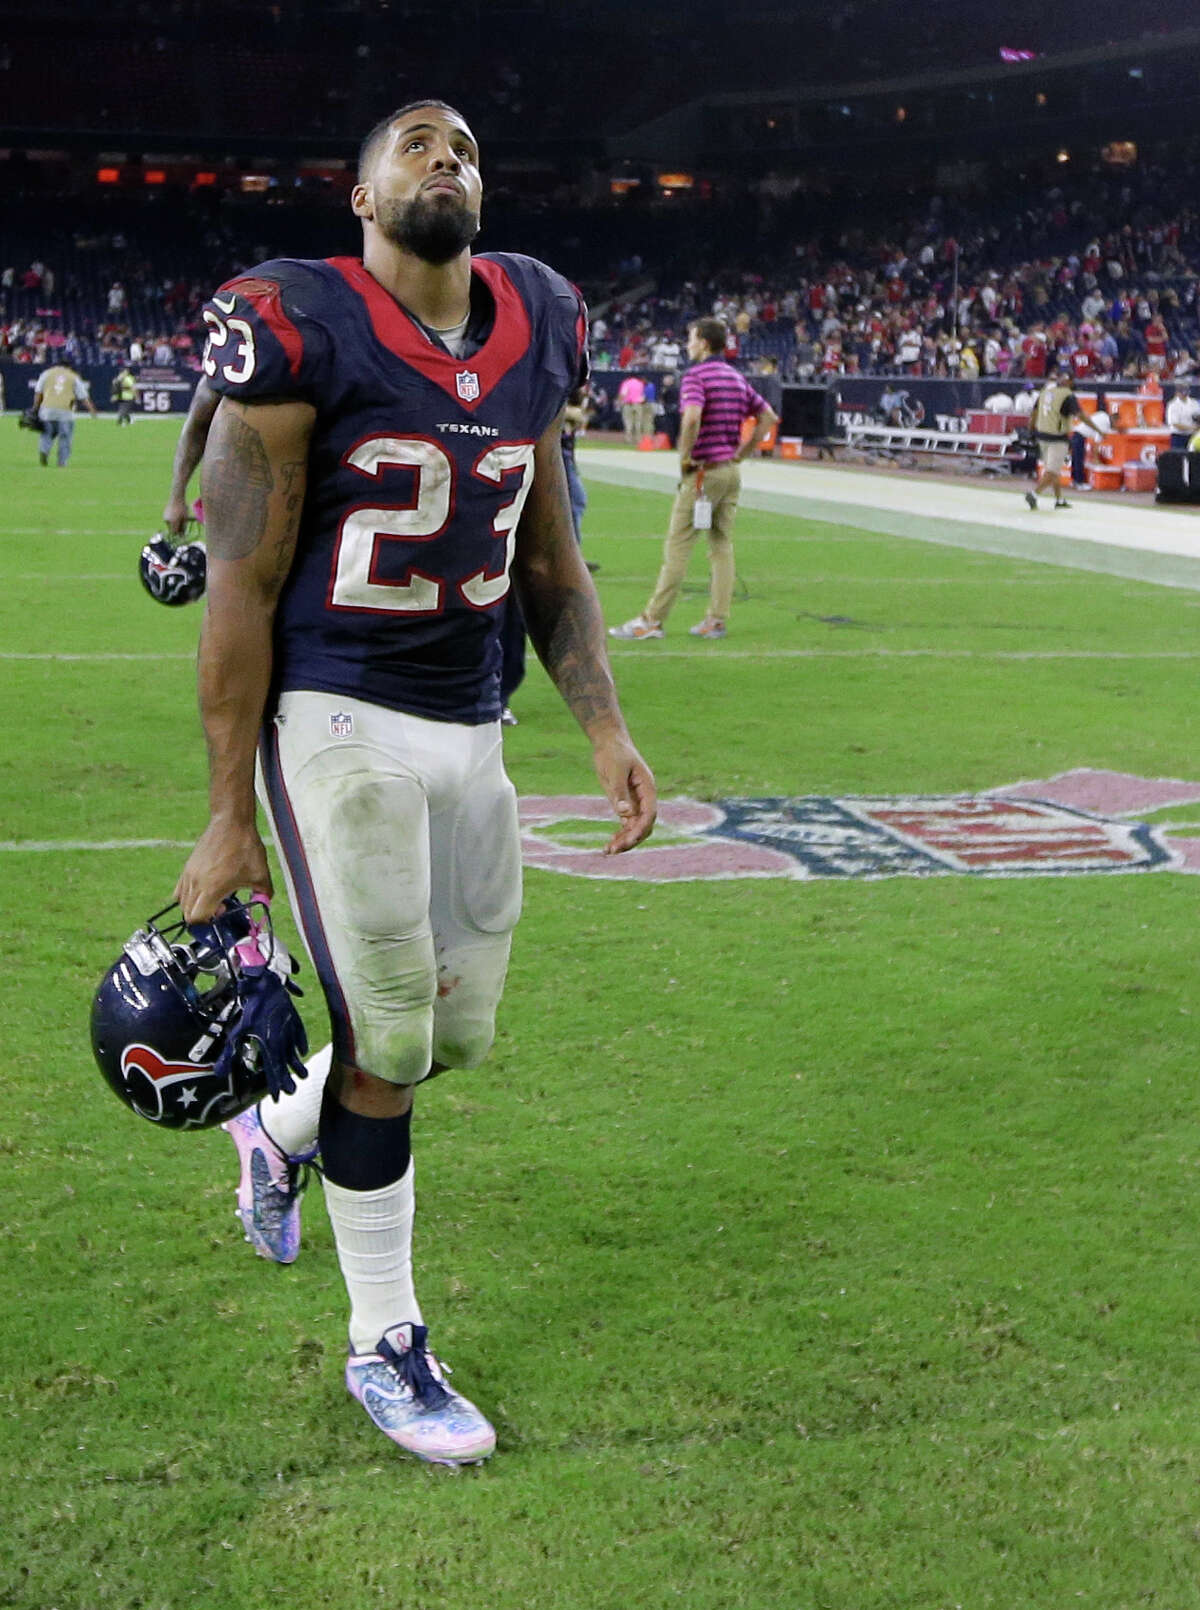 Arian Foster The former Houston Texans running back came out as an atheist in 2015 and shortly thereafter suffered a season-ending injury. Some alleged Christians mocked him.